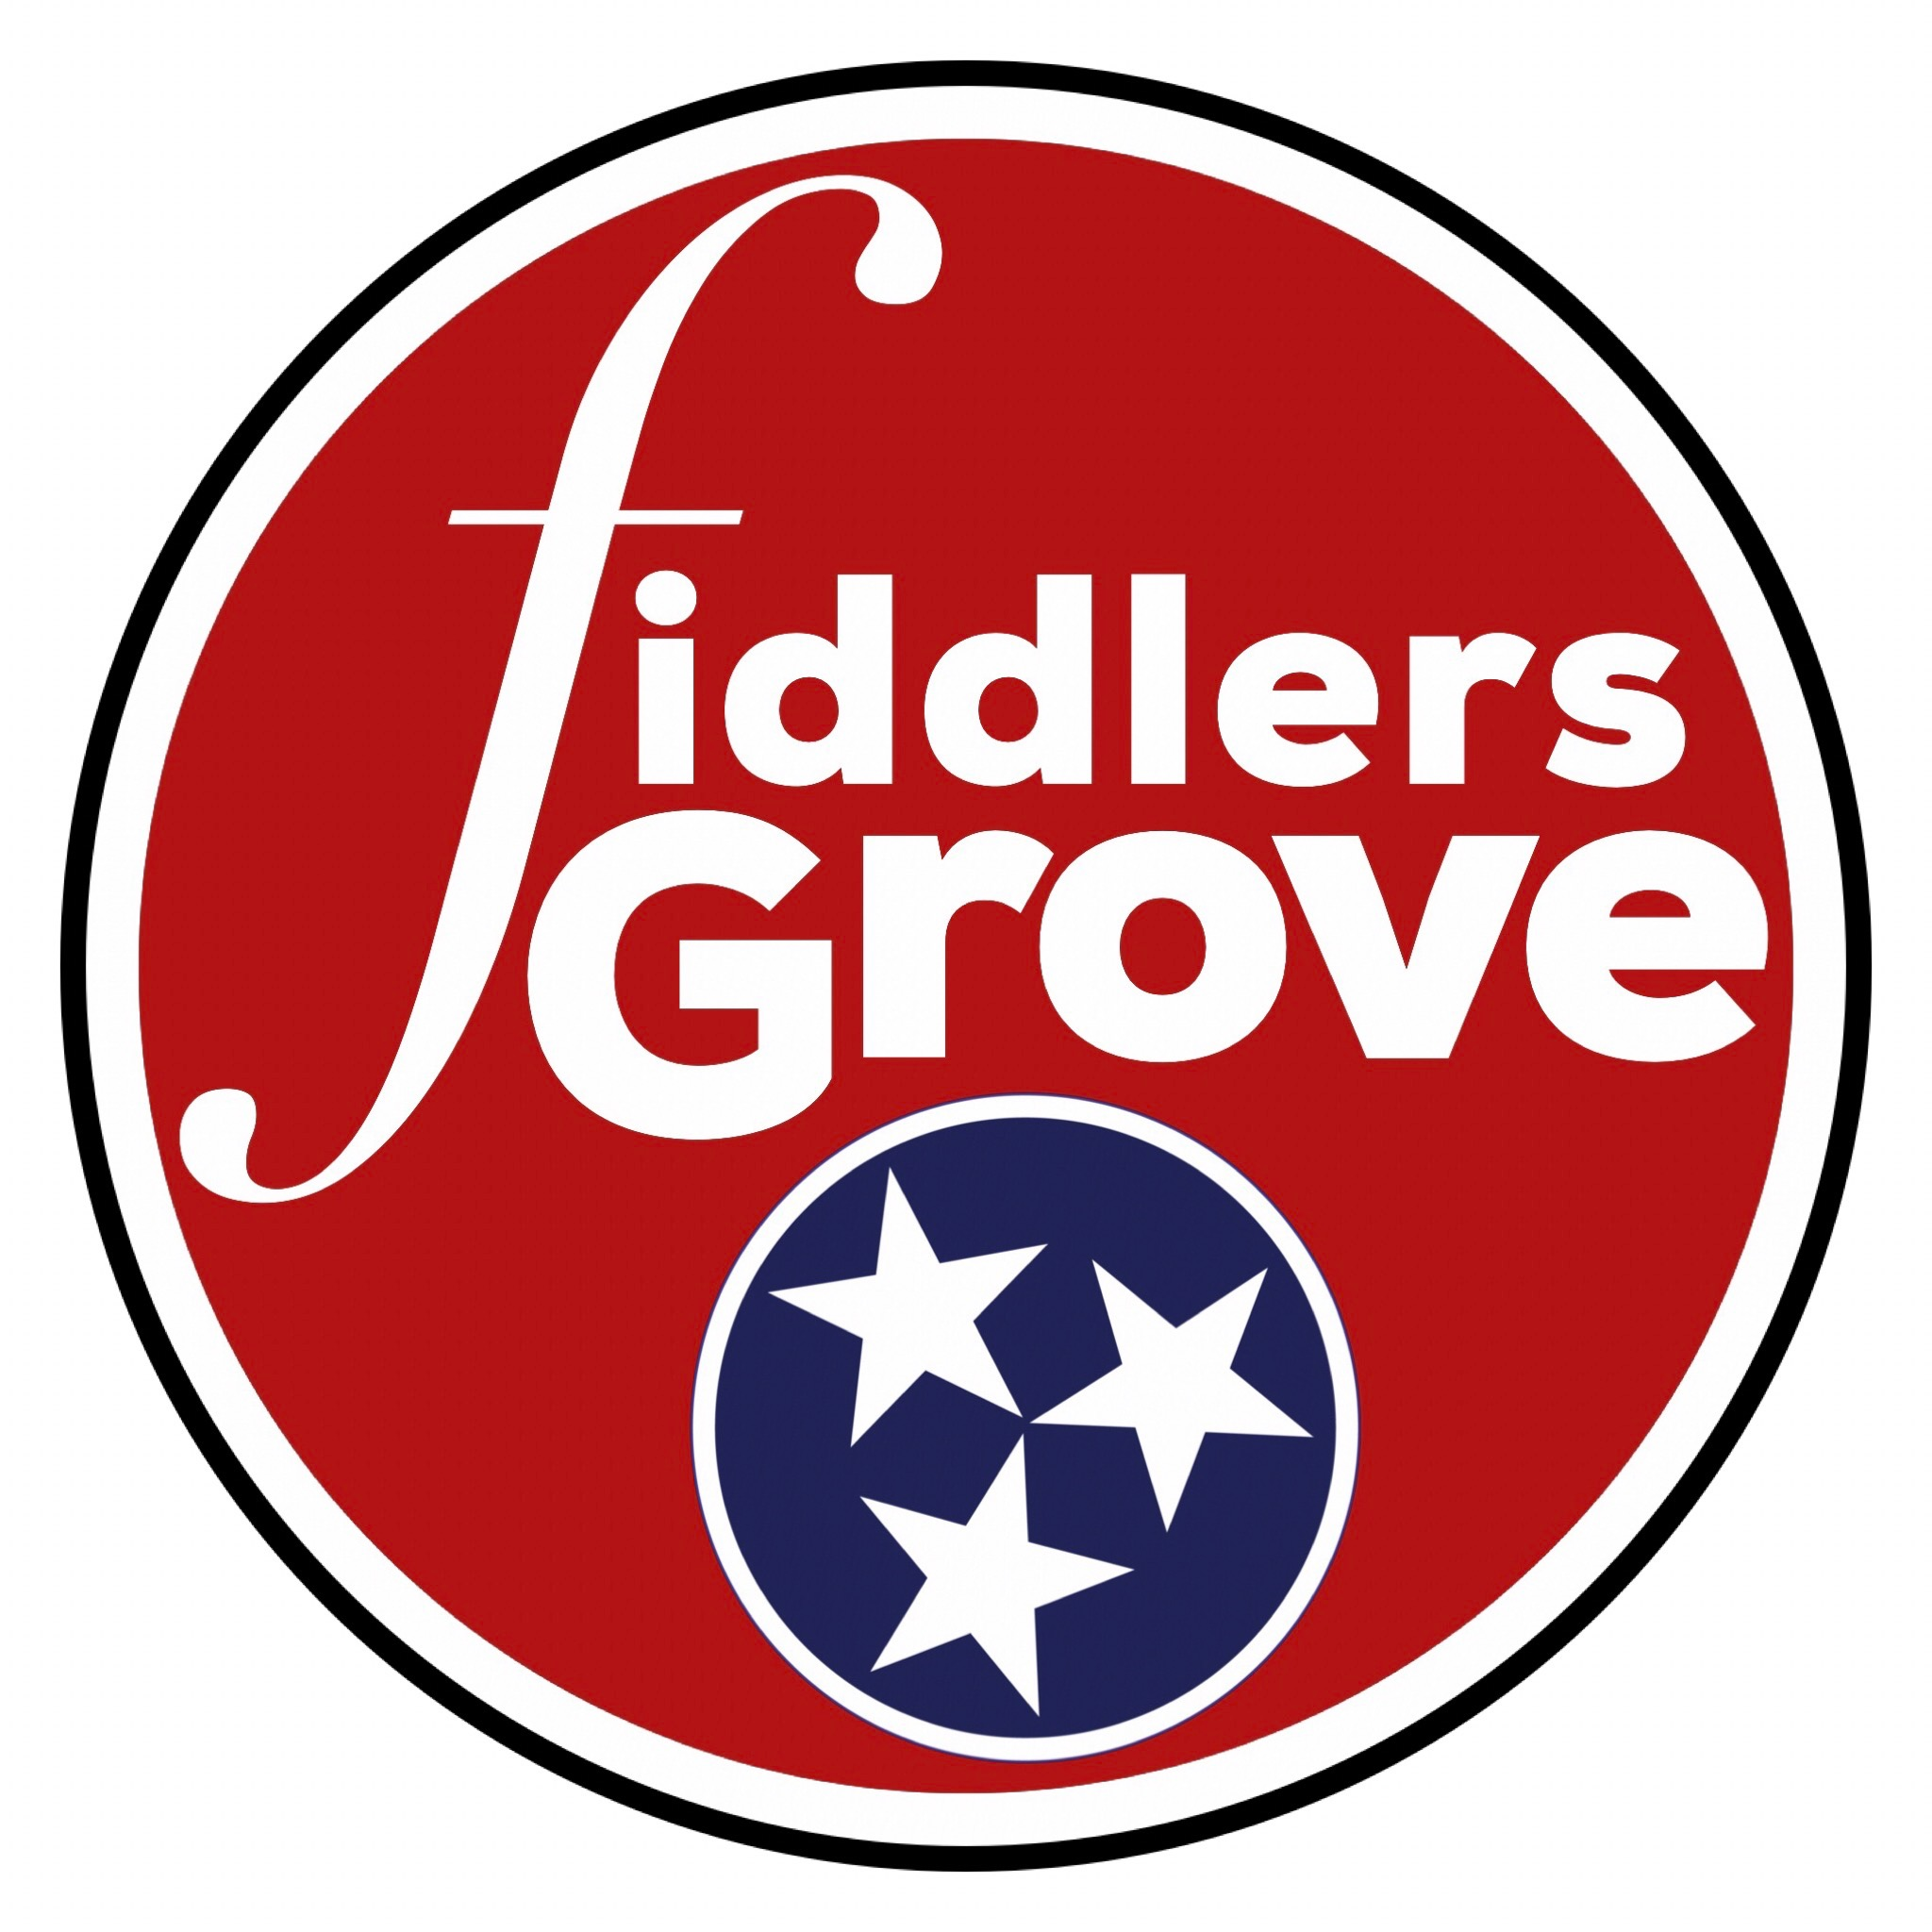 Fiddlers Grove